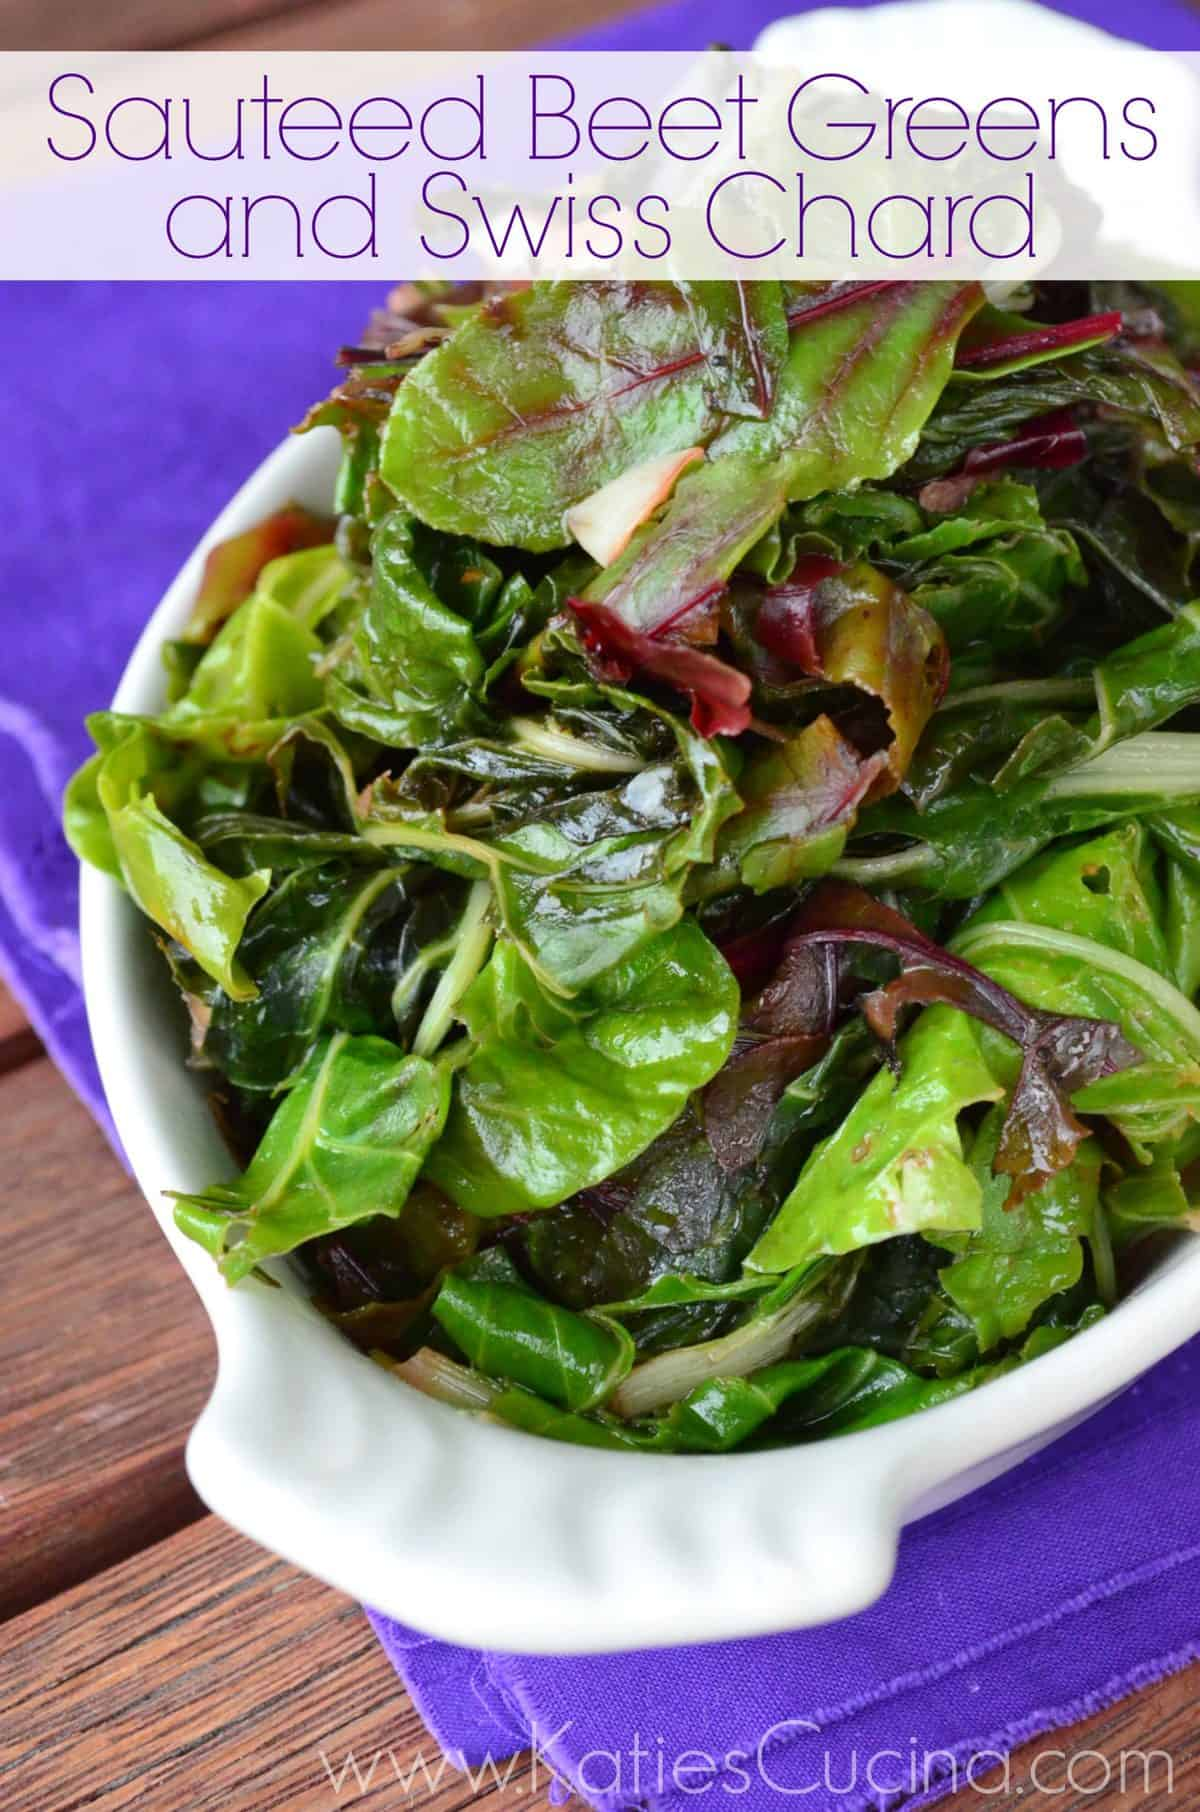 Vertical photo of sauteed Beet Greens and Swiss Chard in a white dish.